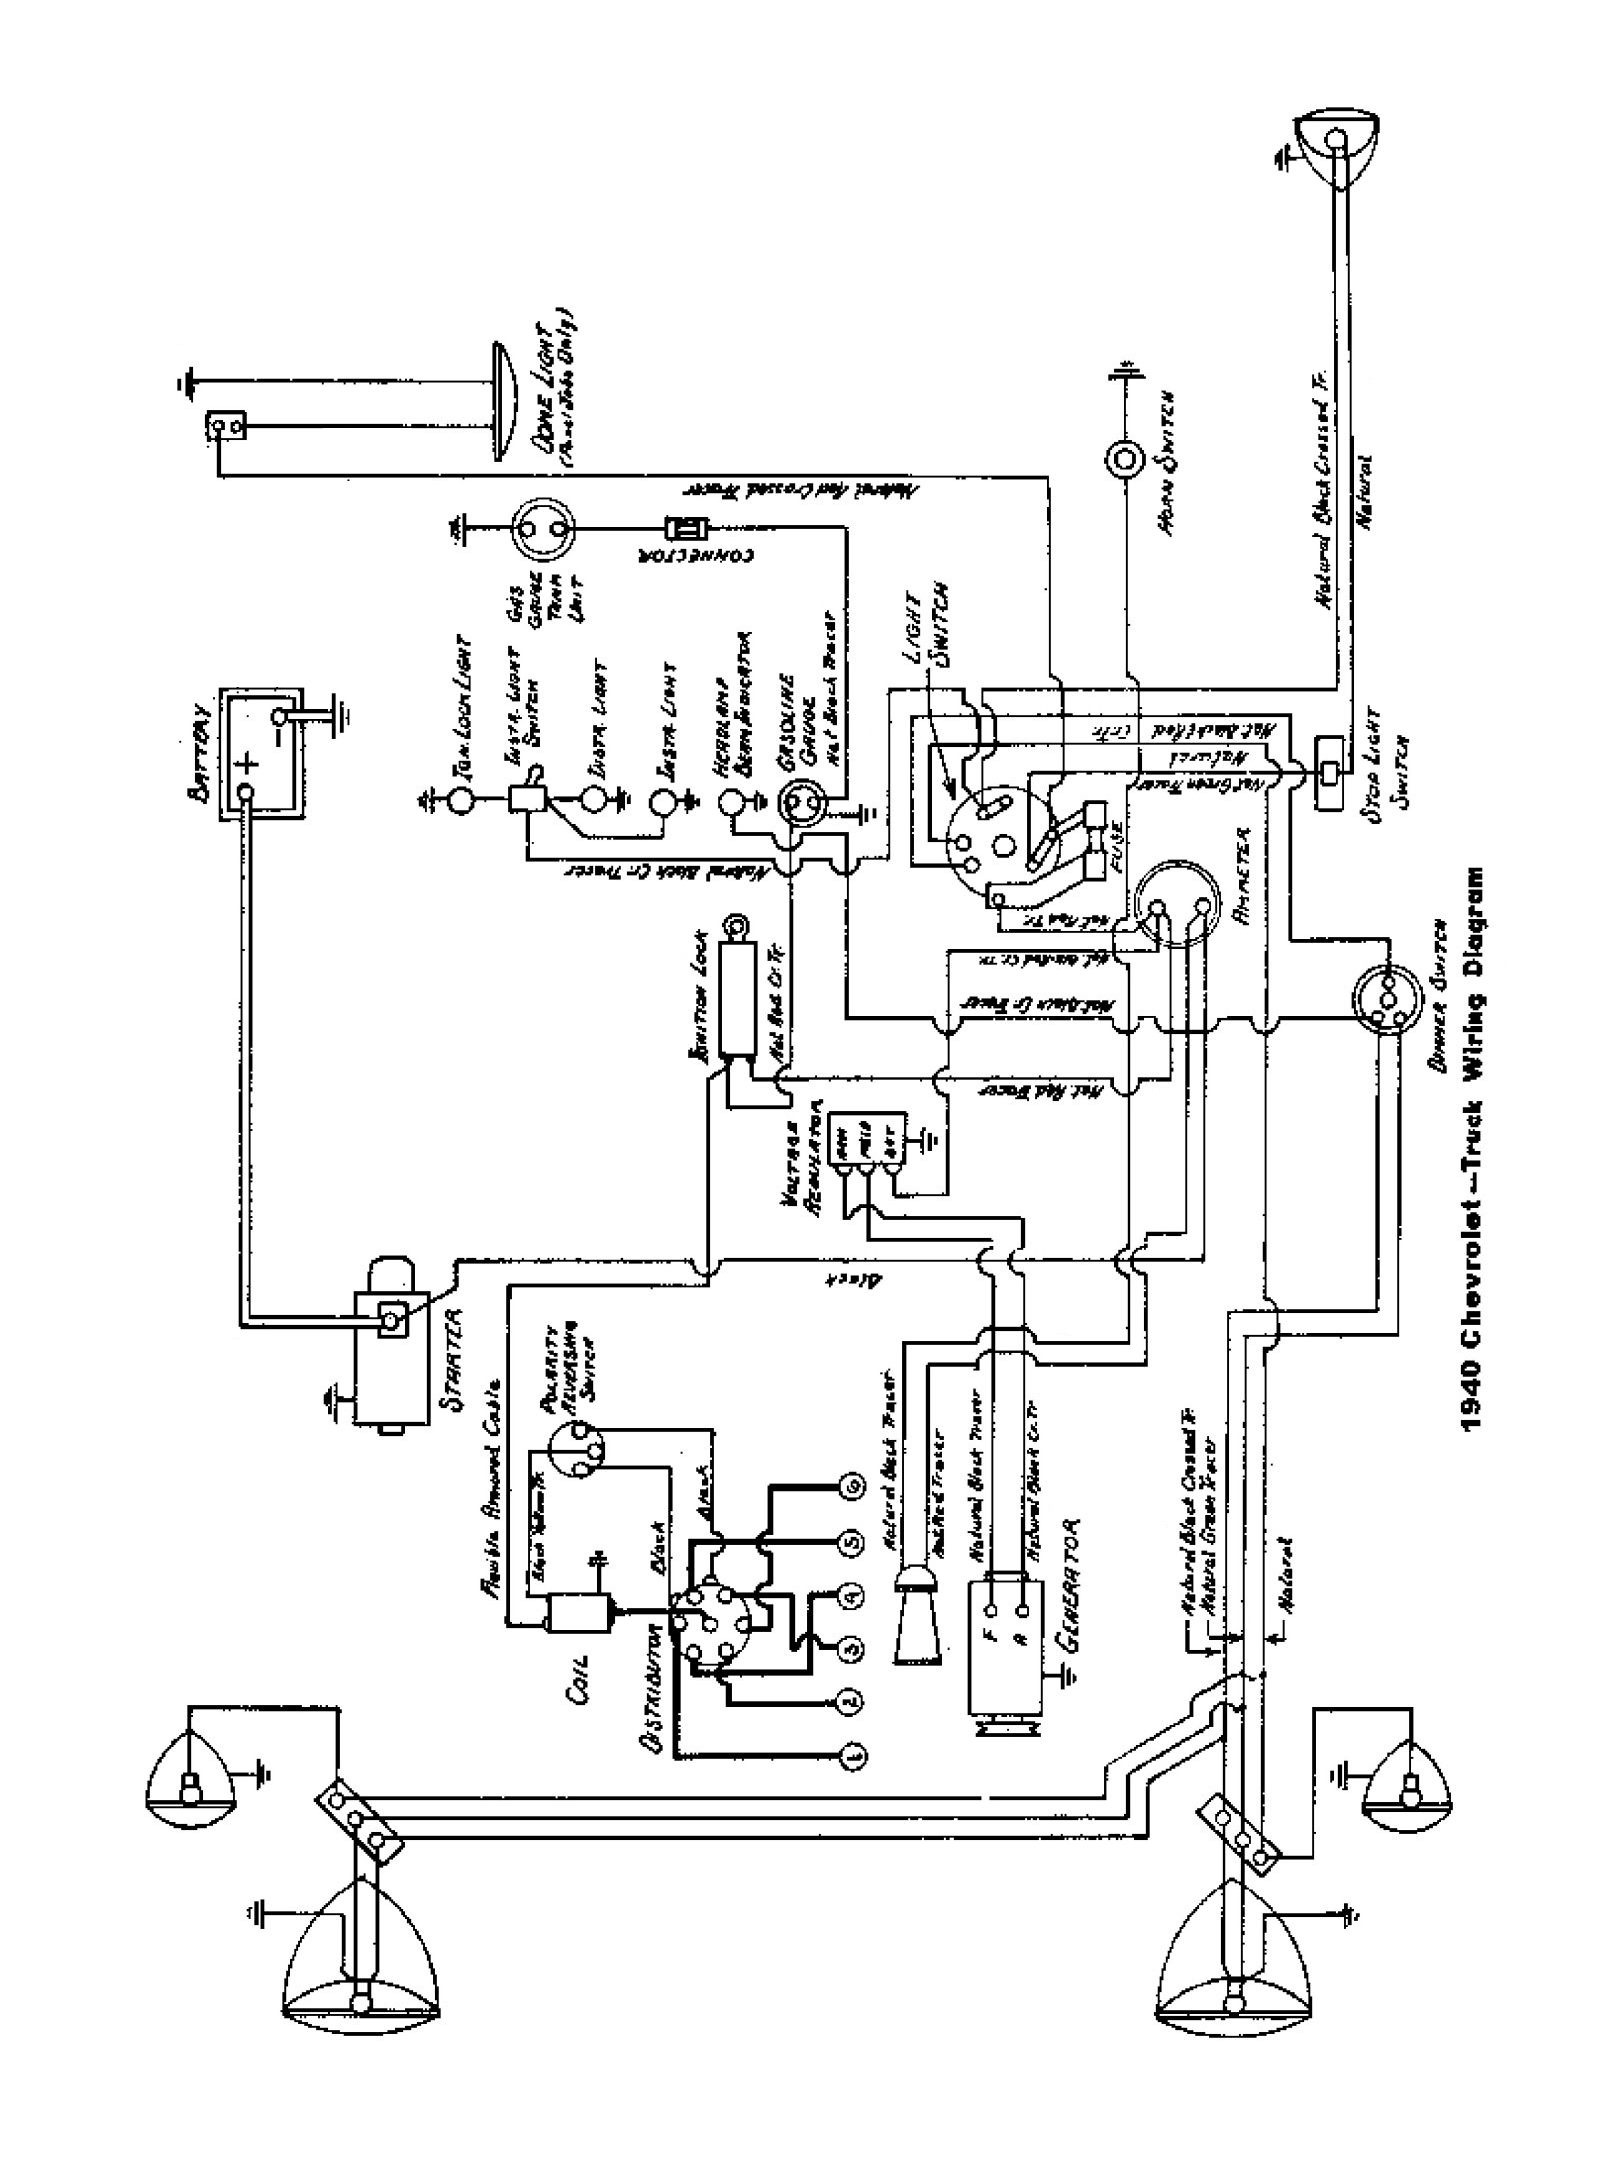 wiring diagram for 1959 chevy delivery truck wiring diagramwiring diagram for 1958 chevy truck online wiring diagramchevy wiring diagramswiring diagram for 1958 chevy truck